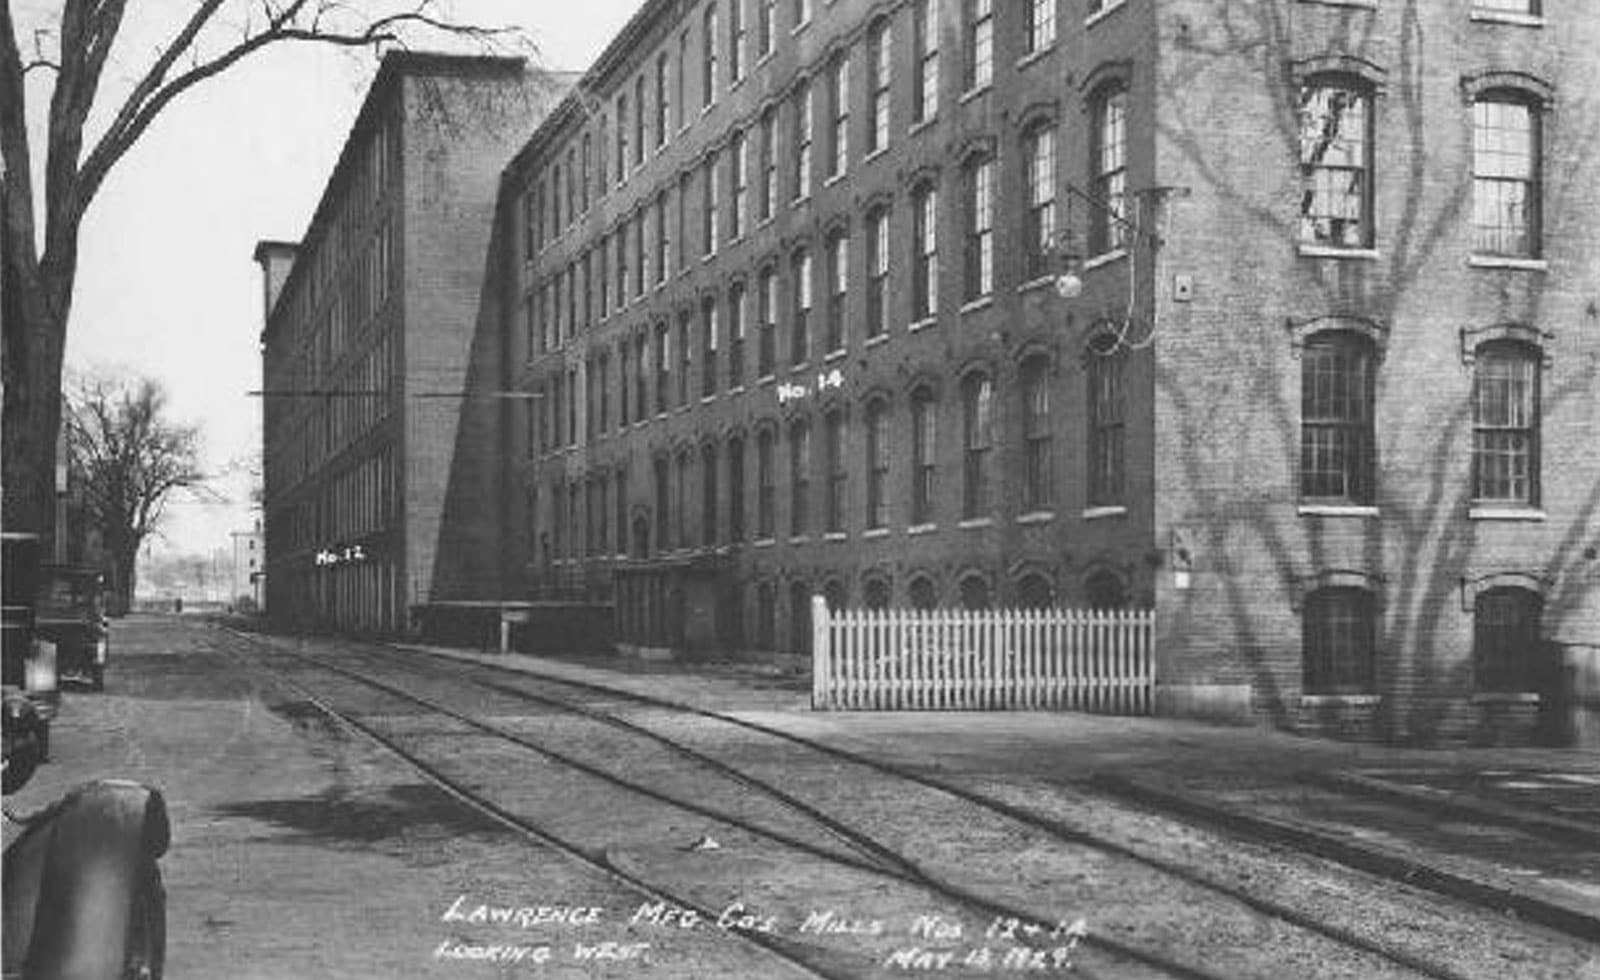 Lofts at Perkins Place in the 1920s